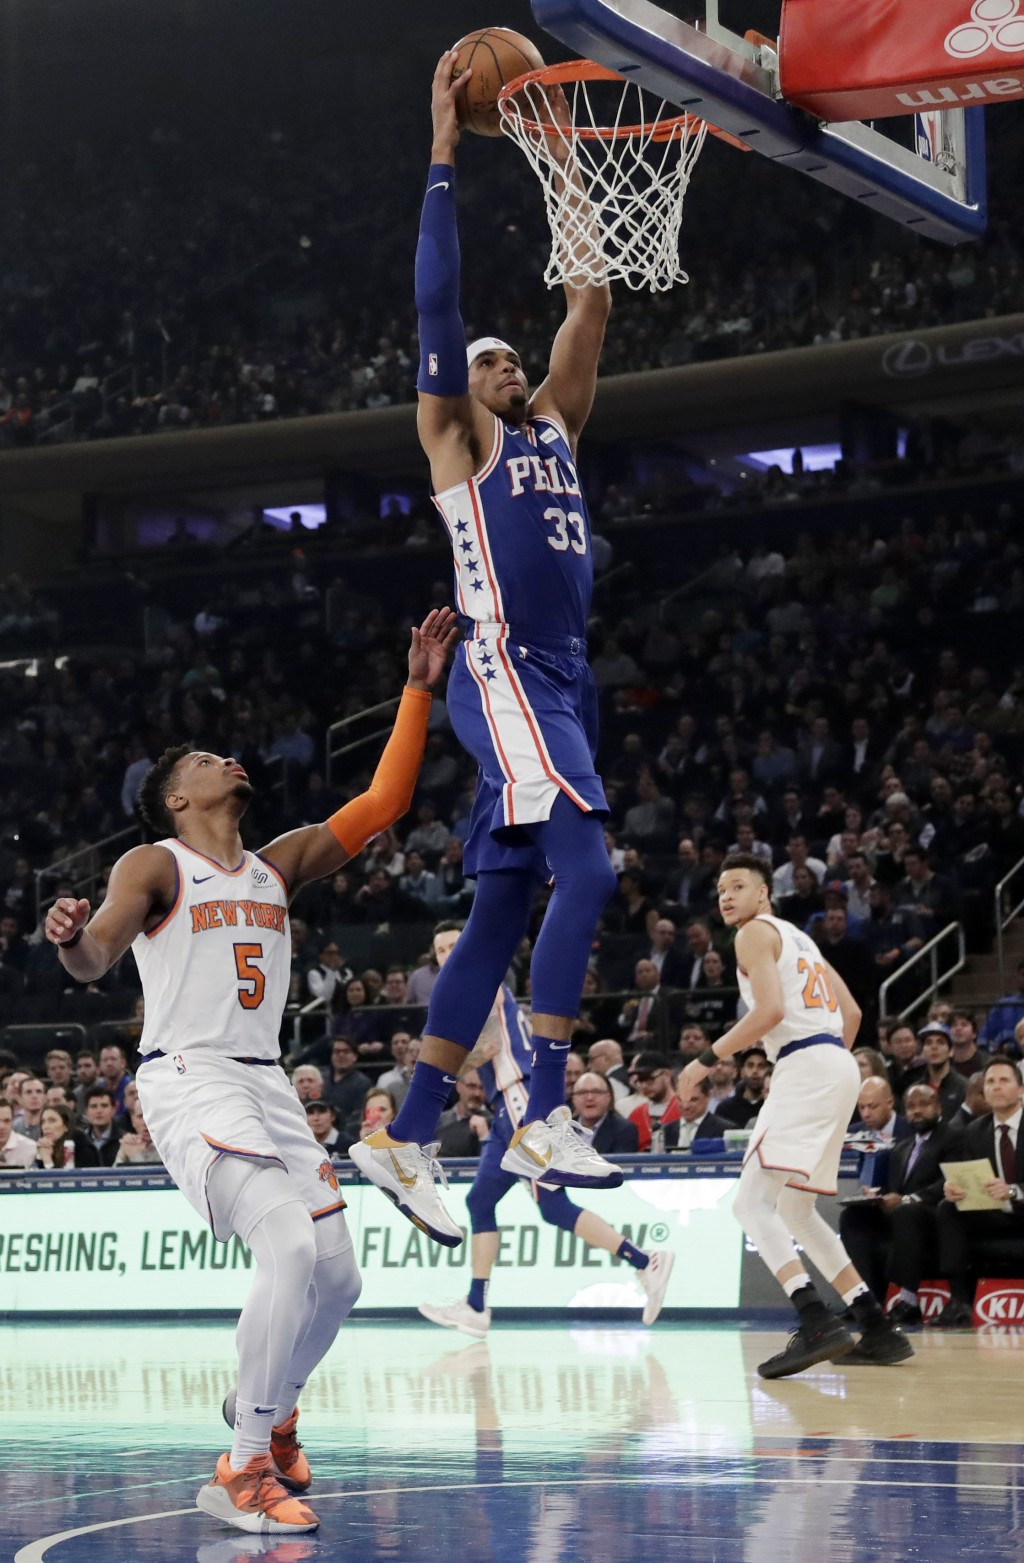 Philadelphia 76ers' Tobias Harris (33) drives past New York Knicks' Dennis Smith Jr. (5) during the first half of an NBA basketball game, Wednesday, F